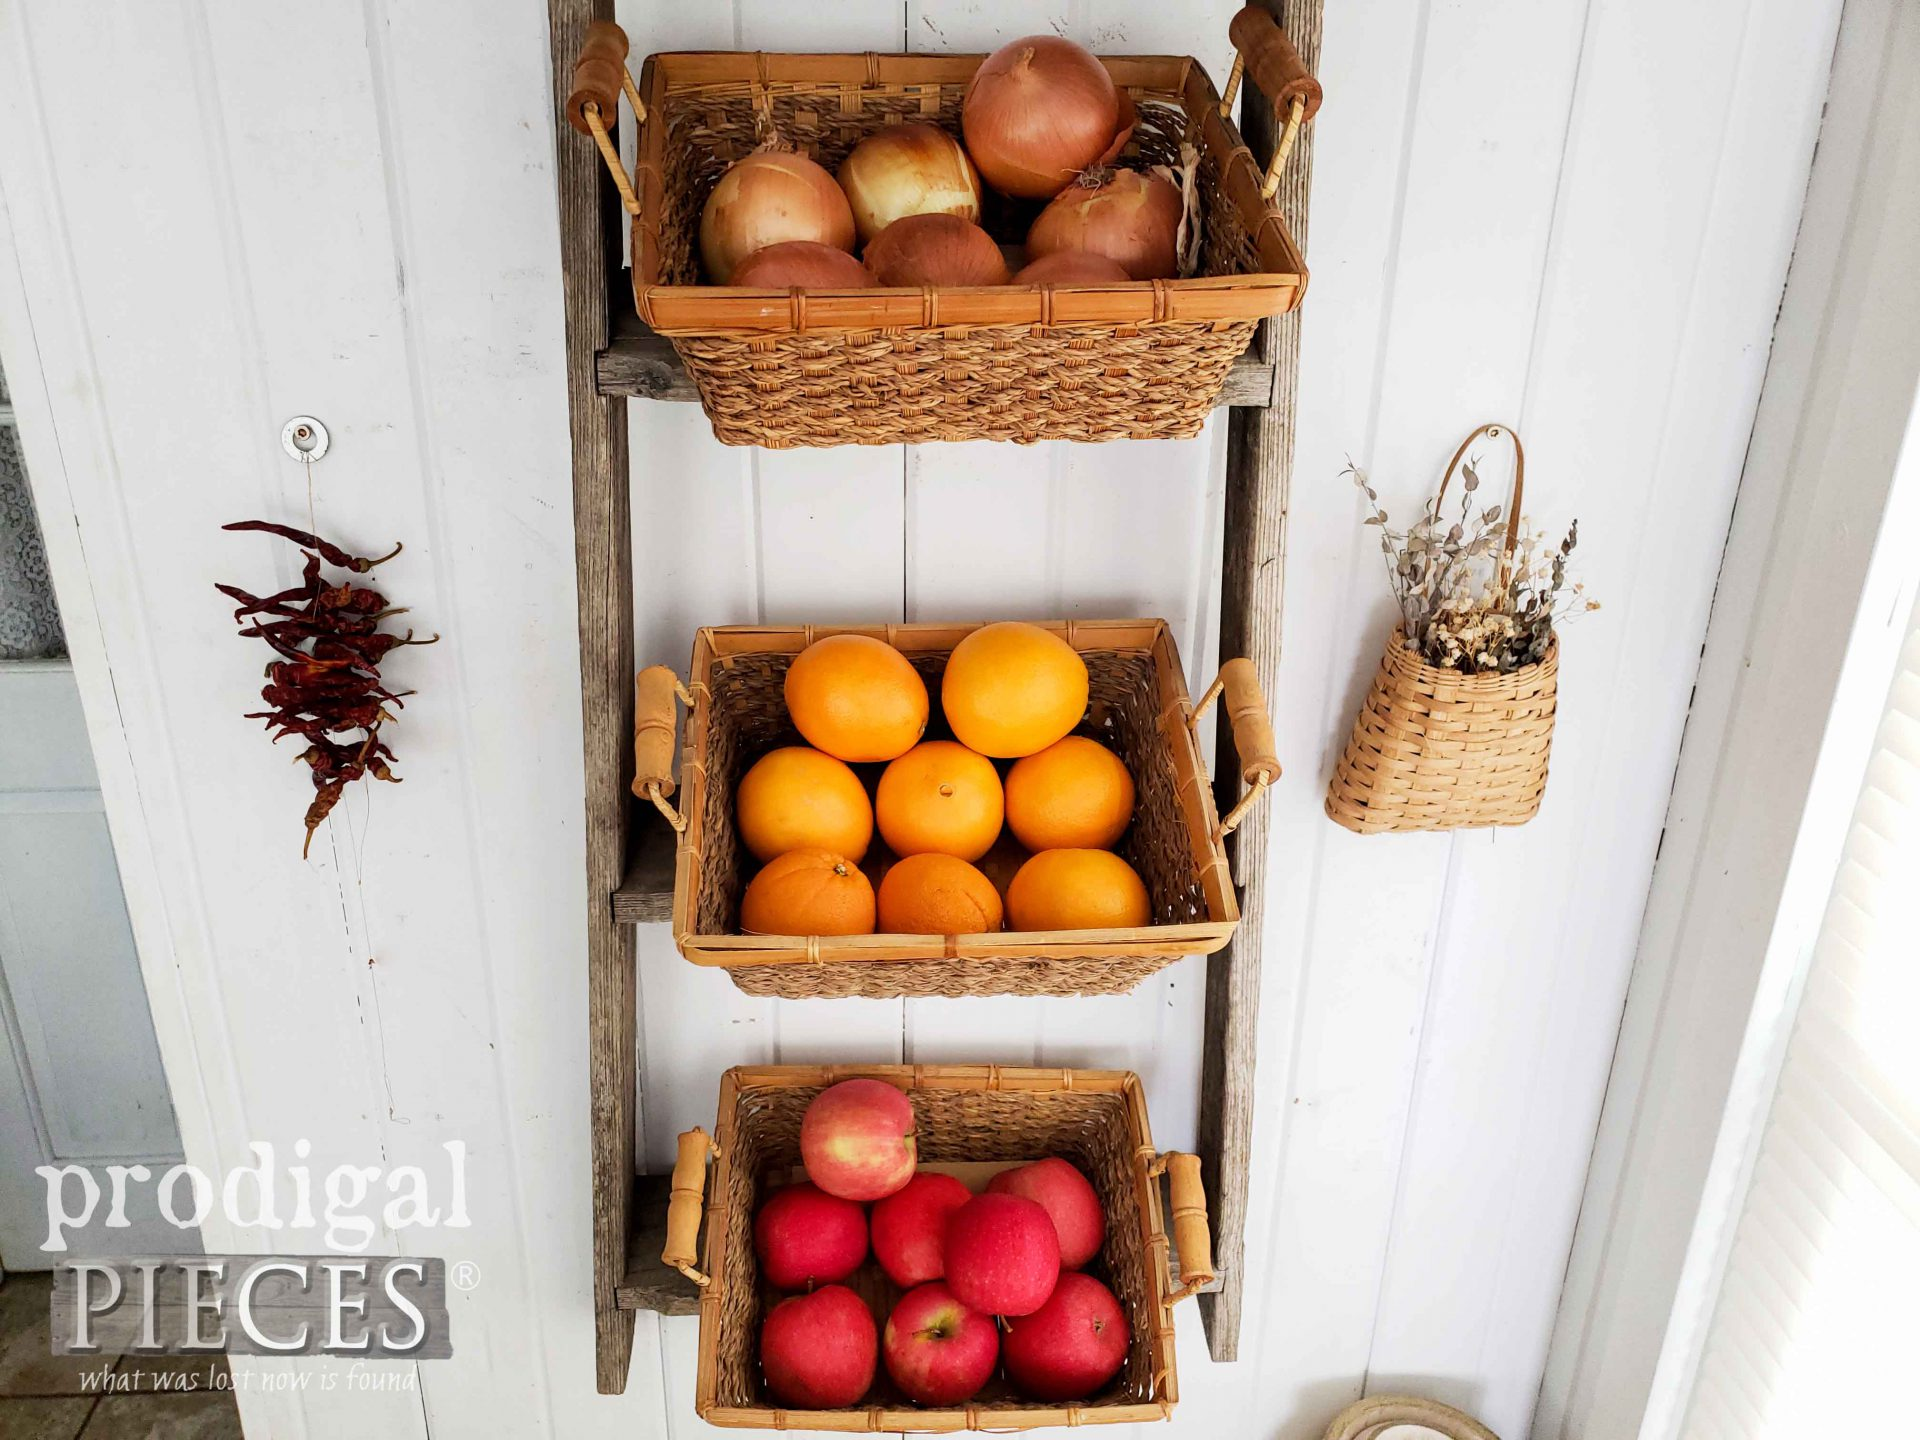 Farmhouse Ladder with Produce Baskets for Kitchen Decor by Larissa of Prodigal Pieces | prodigalpieces.com #prodigalpieces #diy #home #farmhouse #storage #kitchen #homedecor